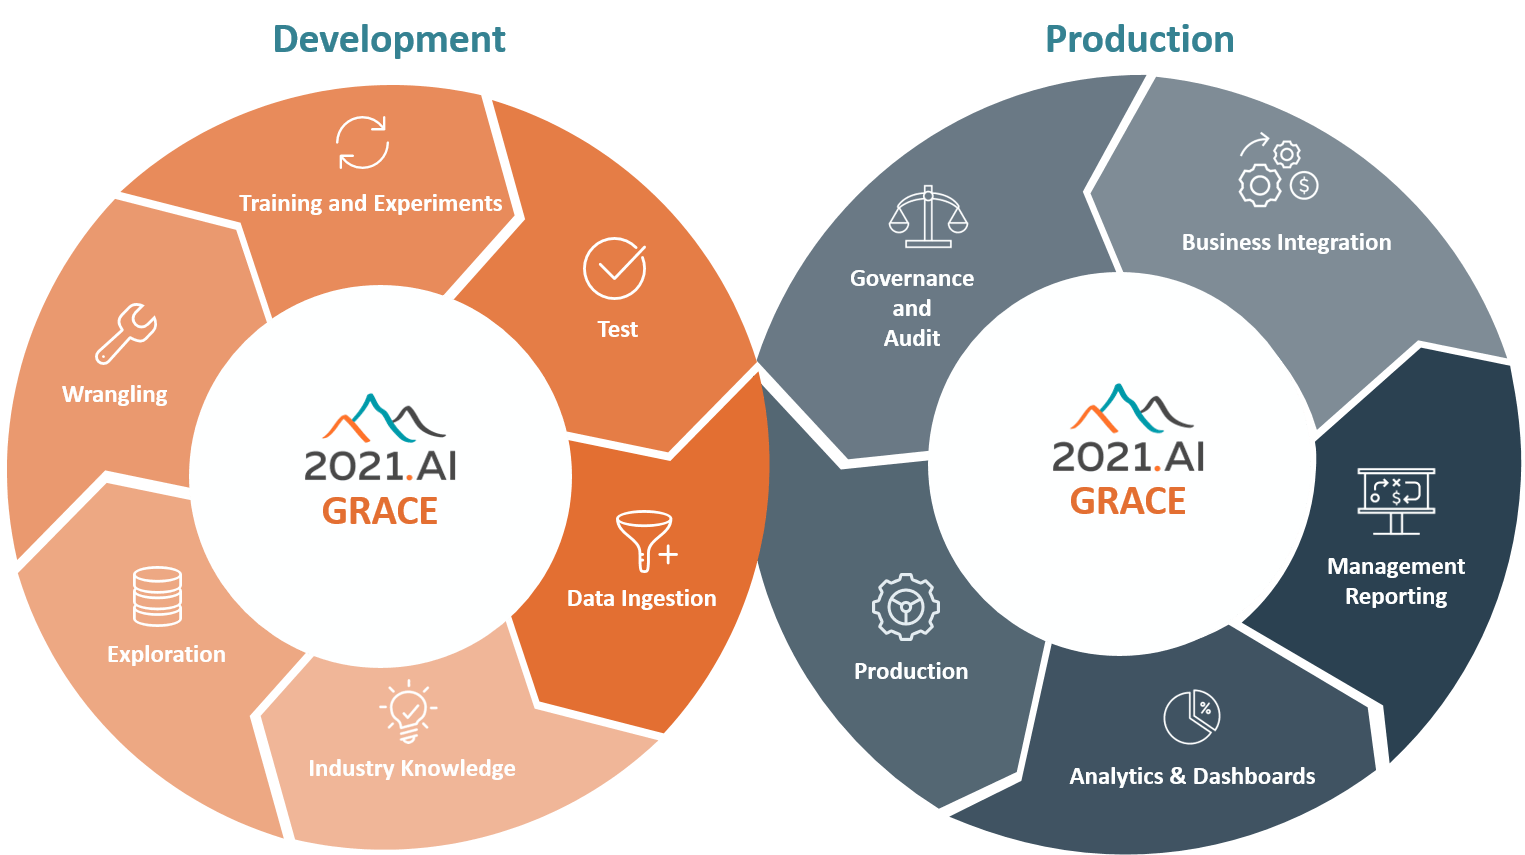 Grace AI Platform - Development and Production